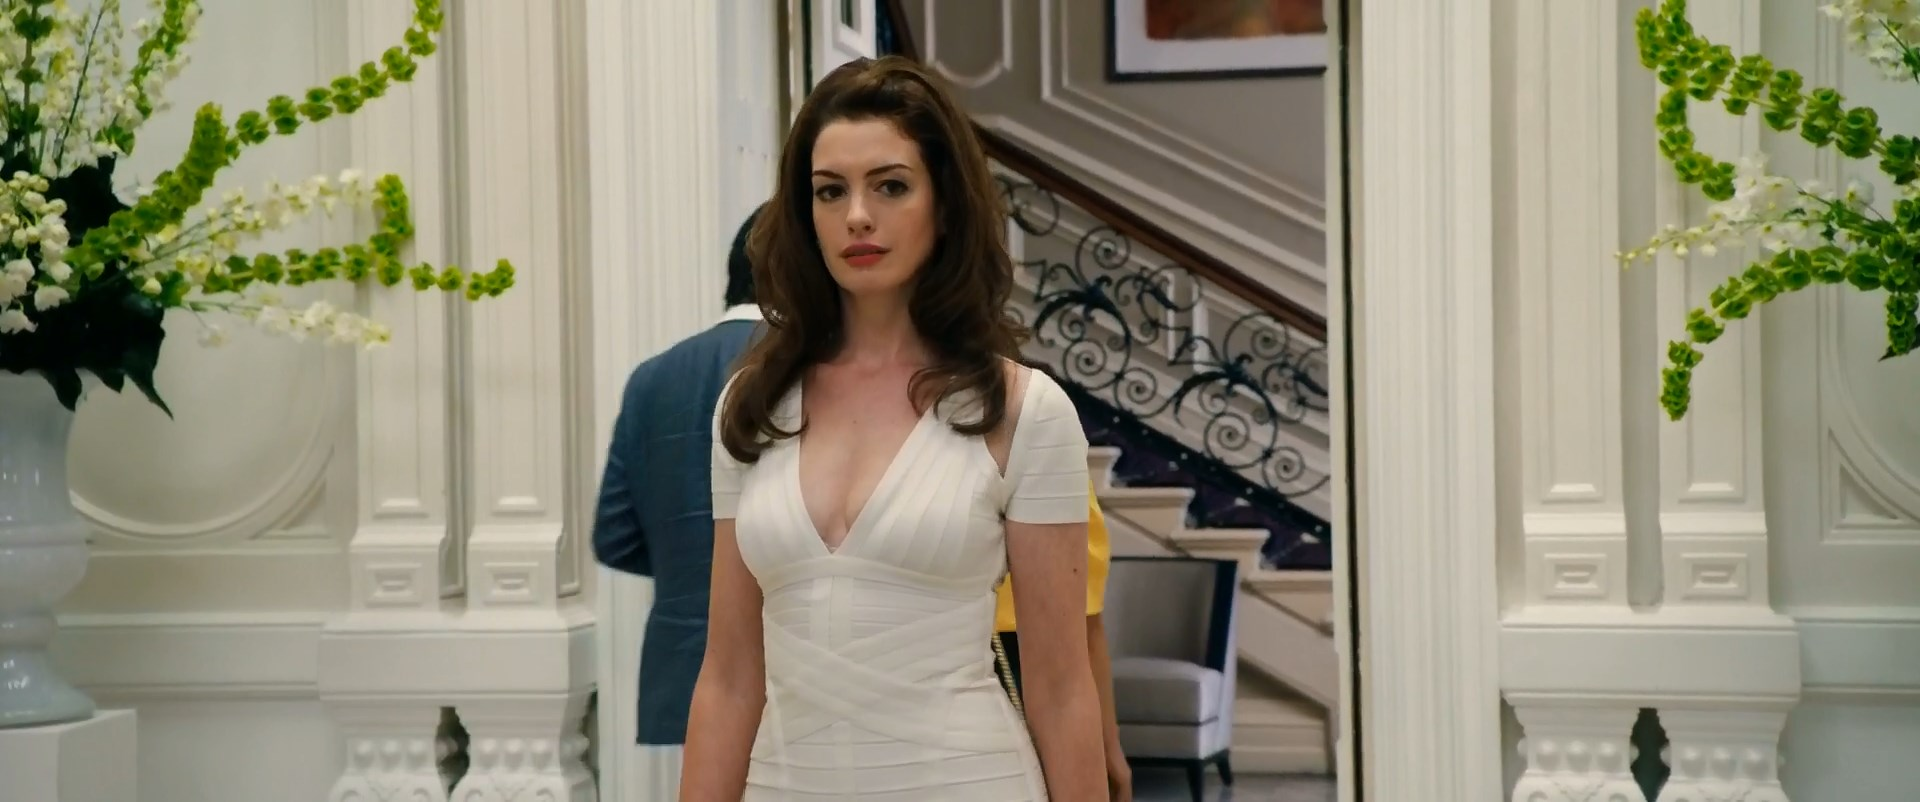 Anne Hathaway sexy - The Hustle (2019)